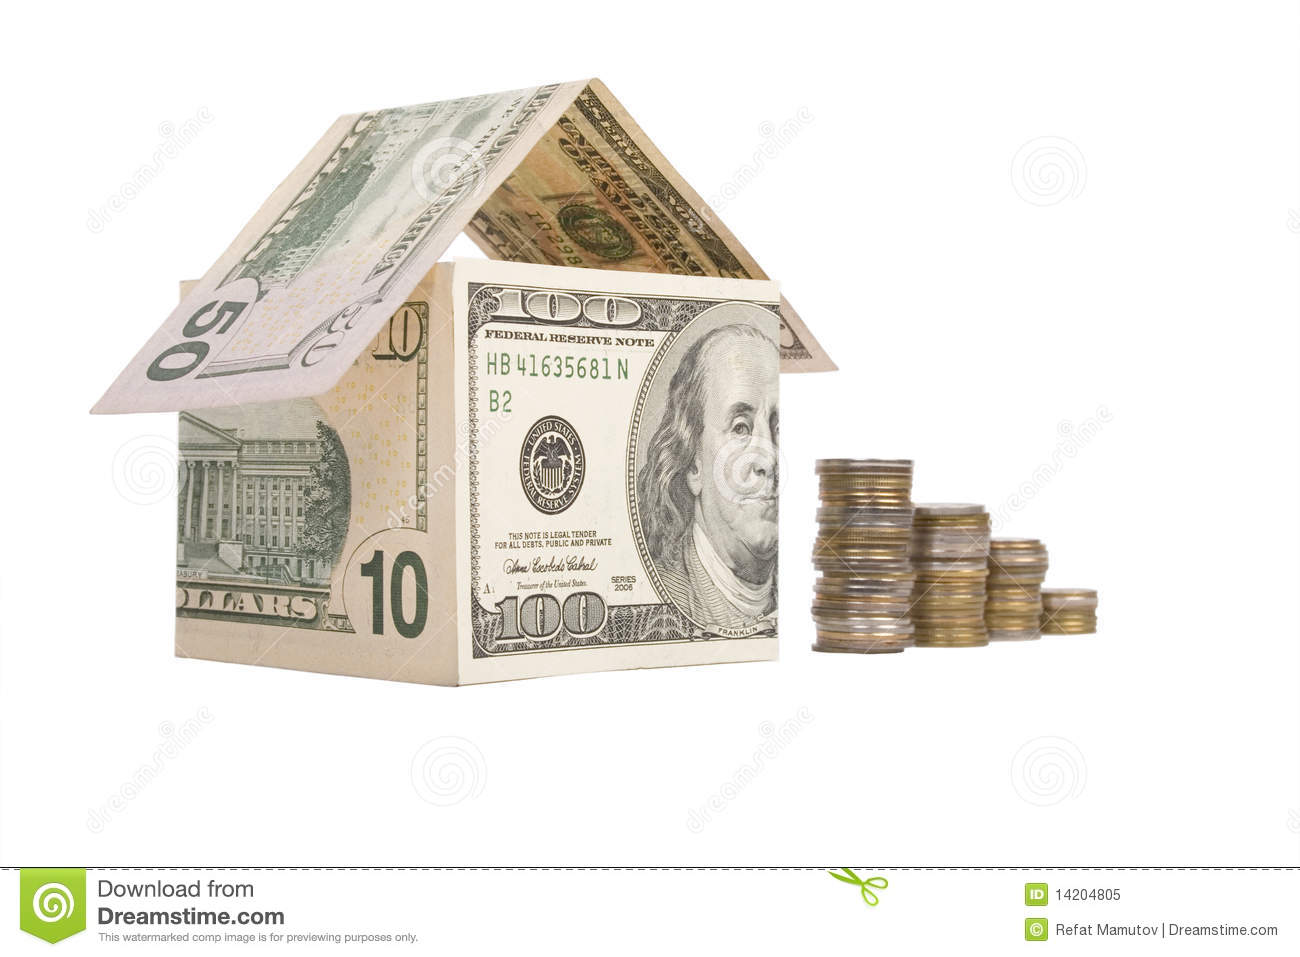 House made of money royalty free stock image for Free money to build a house